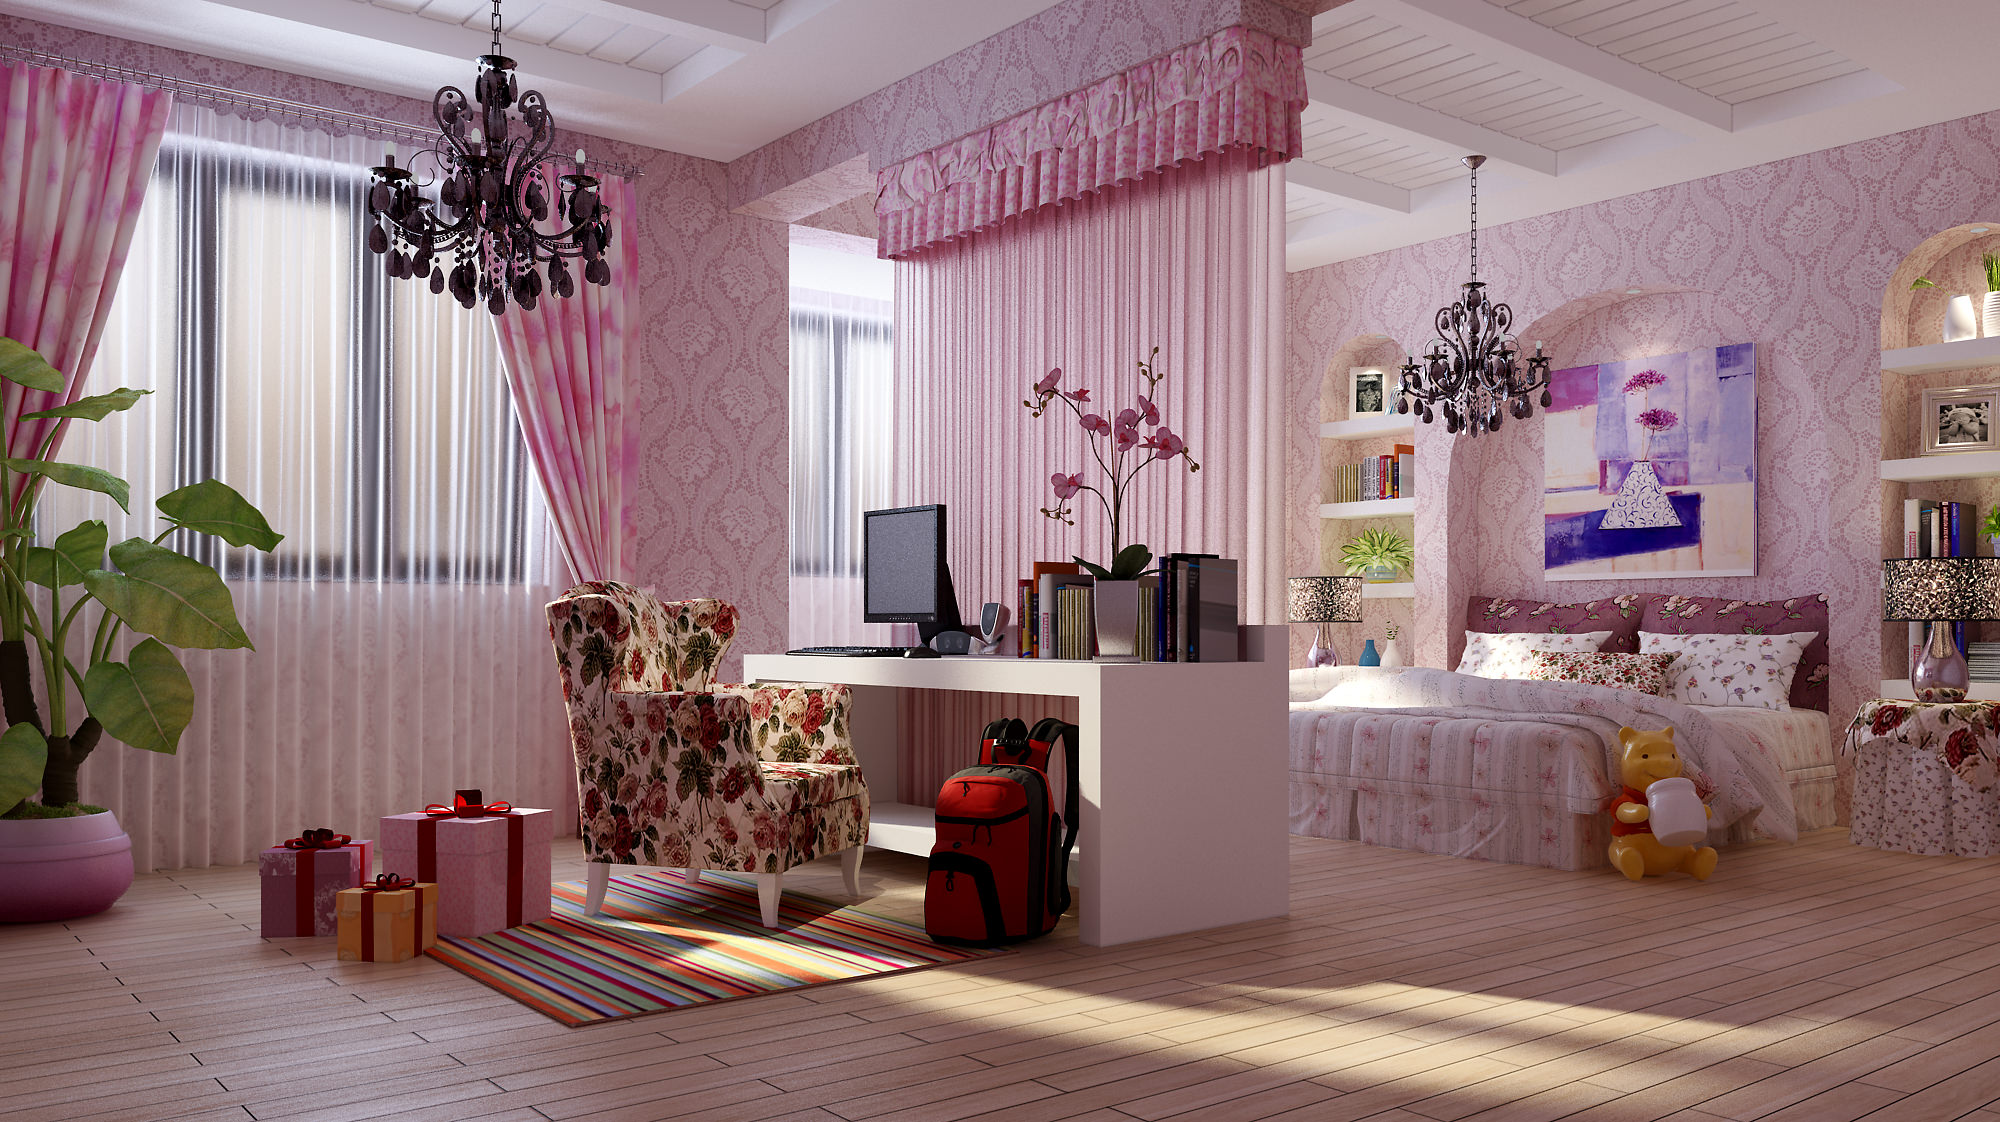 Kids Bedroom Model kids bedroom with chair 3d model | cgtrader